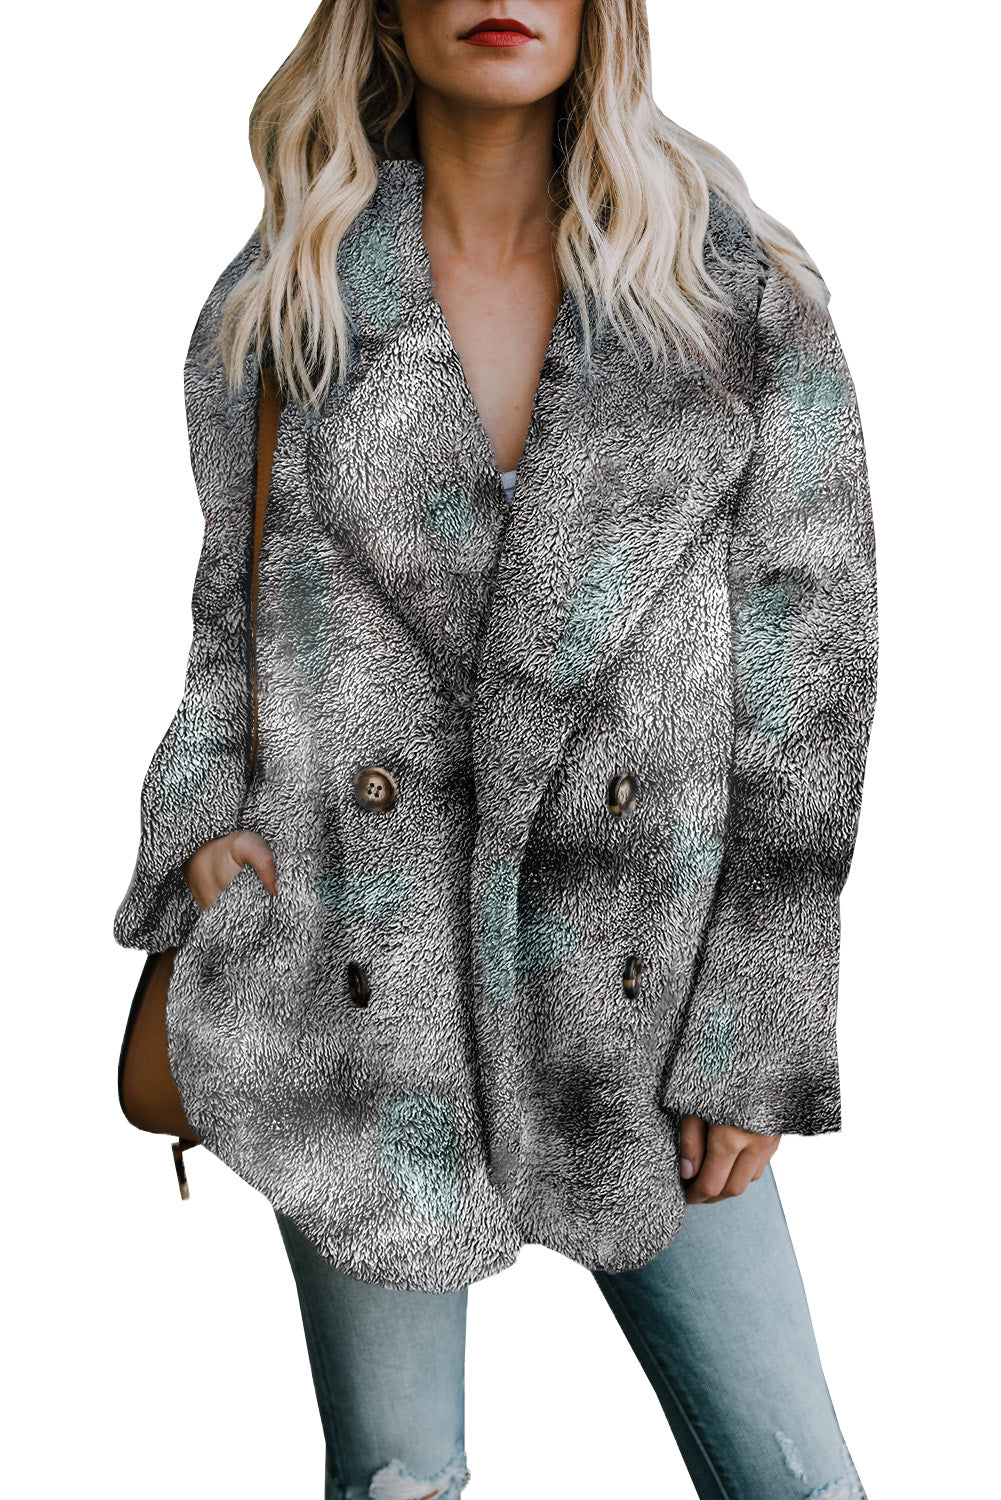 Gray Tie Dye Lapel Collar Open Front Fleece Coat